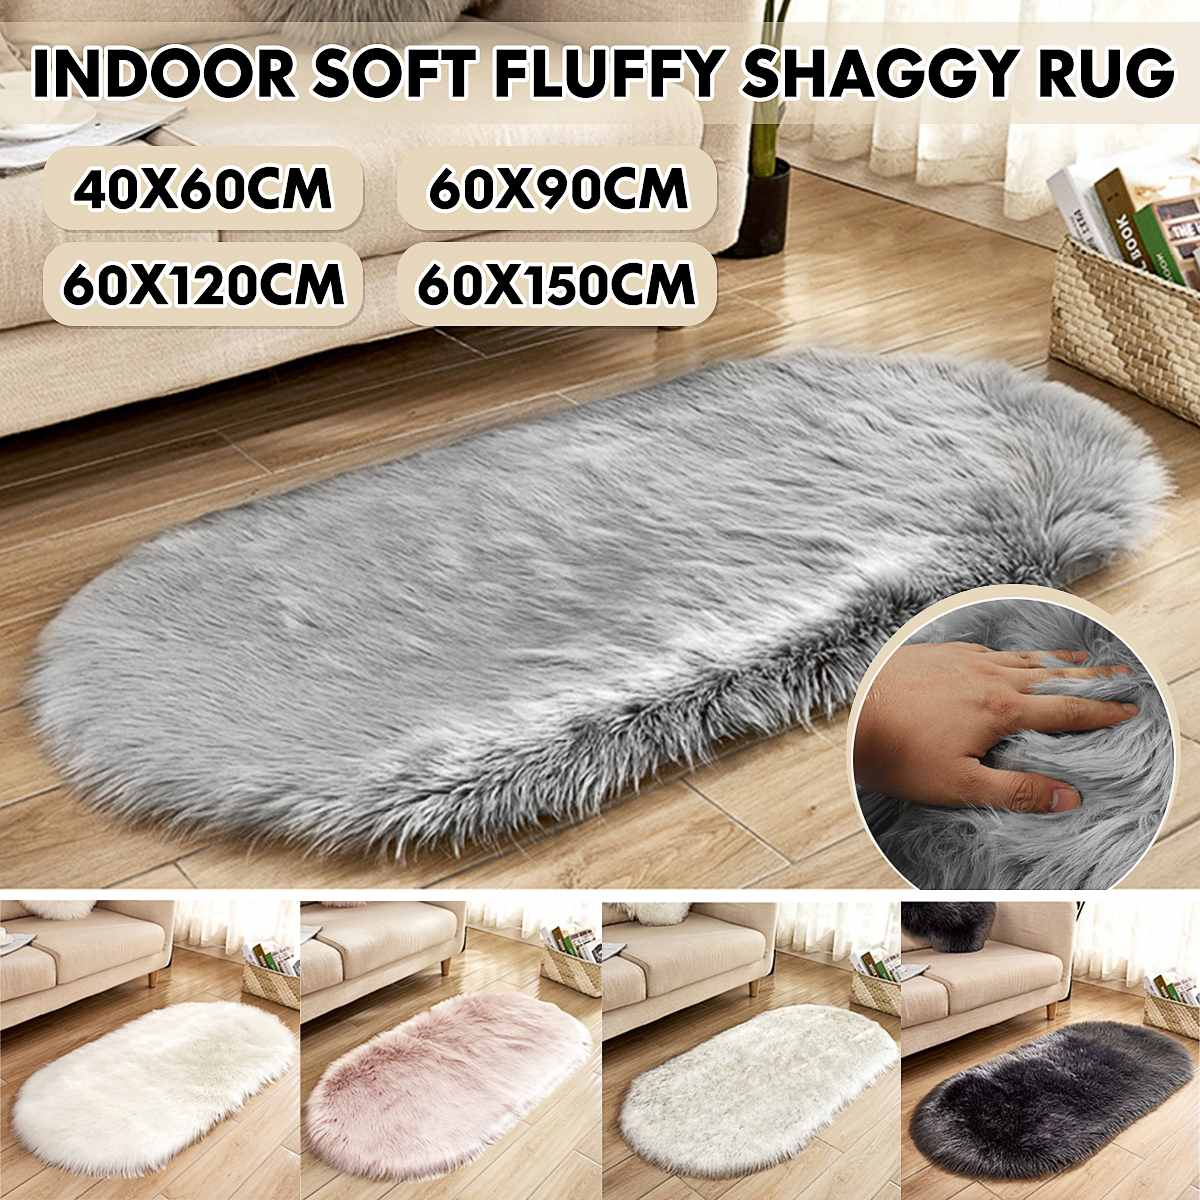 5 Colors Ellipse Soft Faux Sheepskin Fur Chair Cushion Area Rugs For Bedroom Floor Shaggy Silky Plush Carpet White Bedside Mat